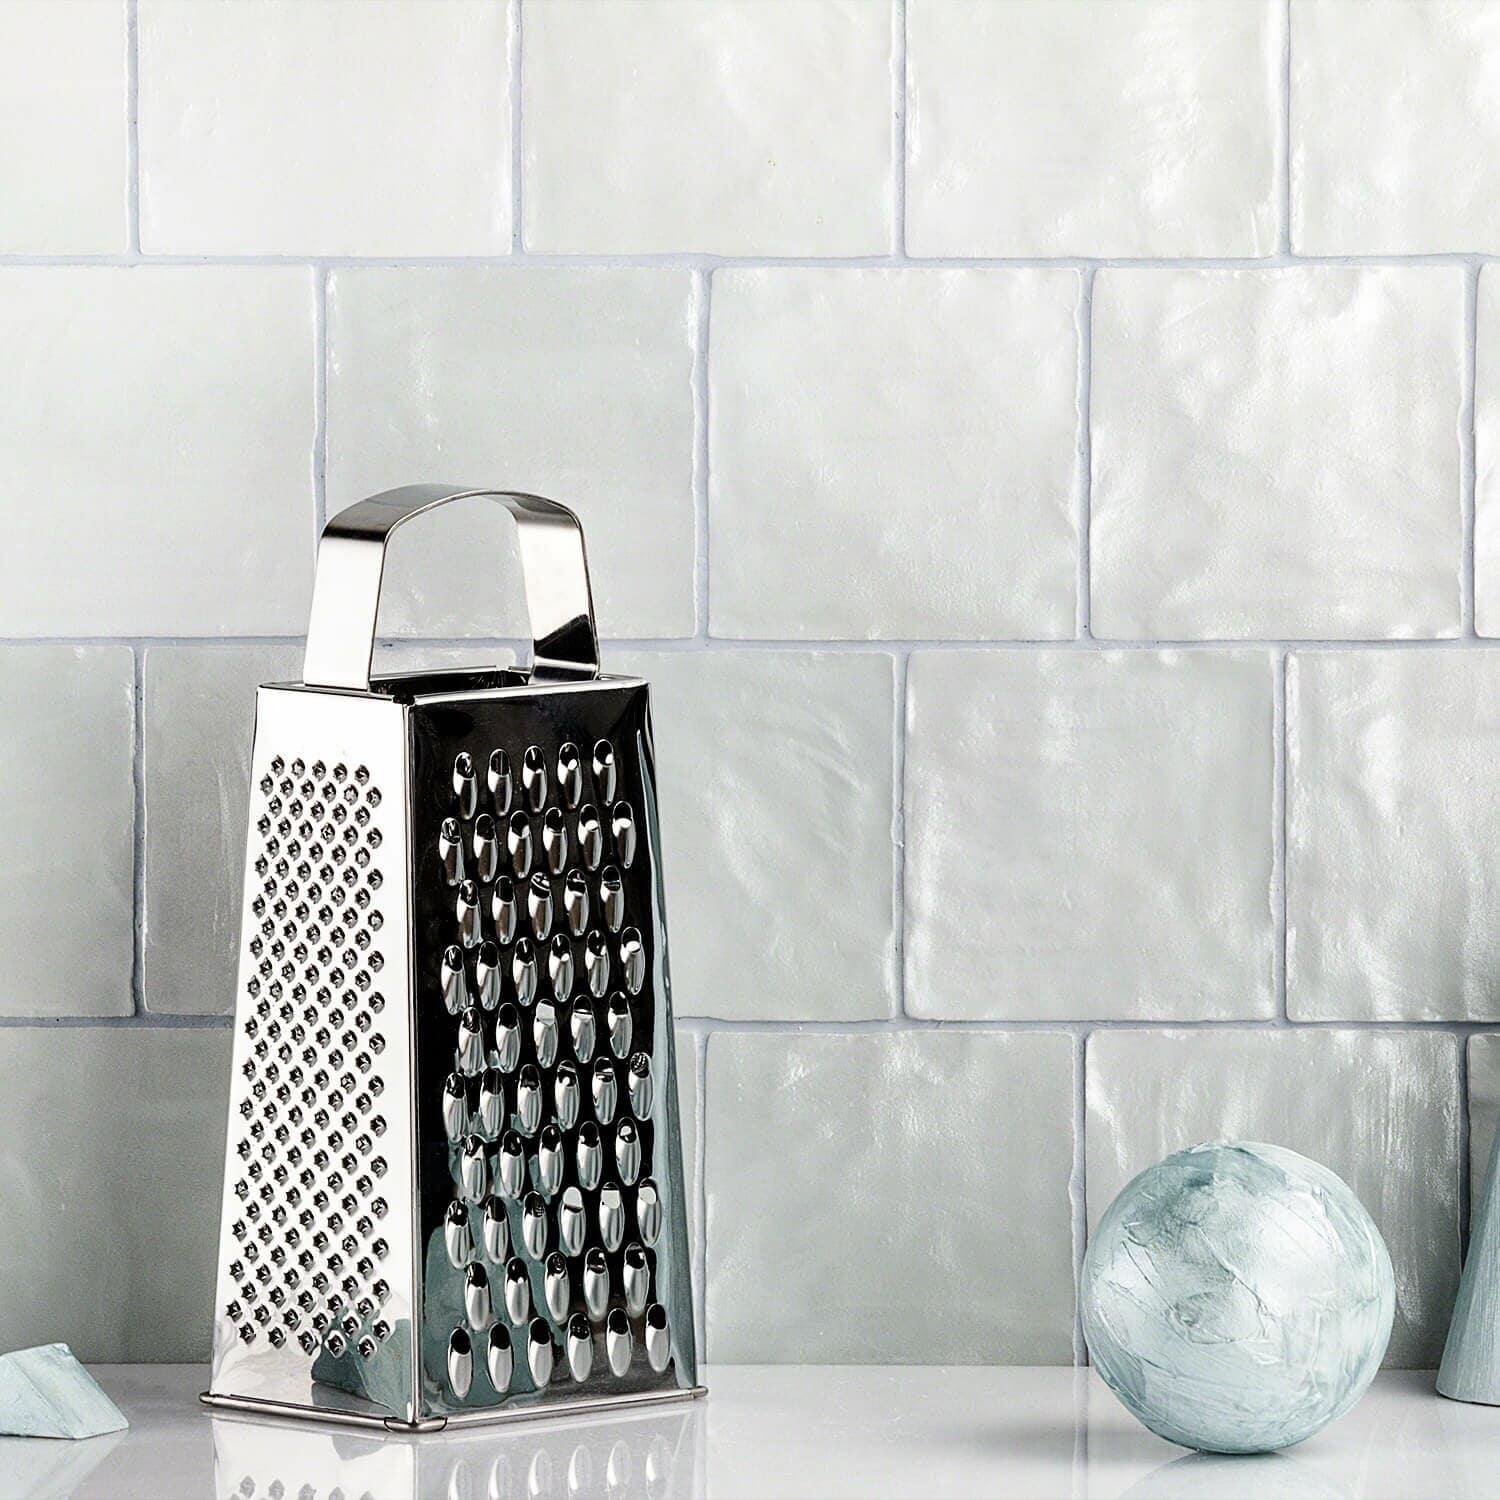 Add a Subtle Rustic Hint with this Light Grey Backsplash Tile